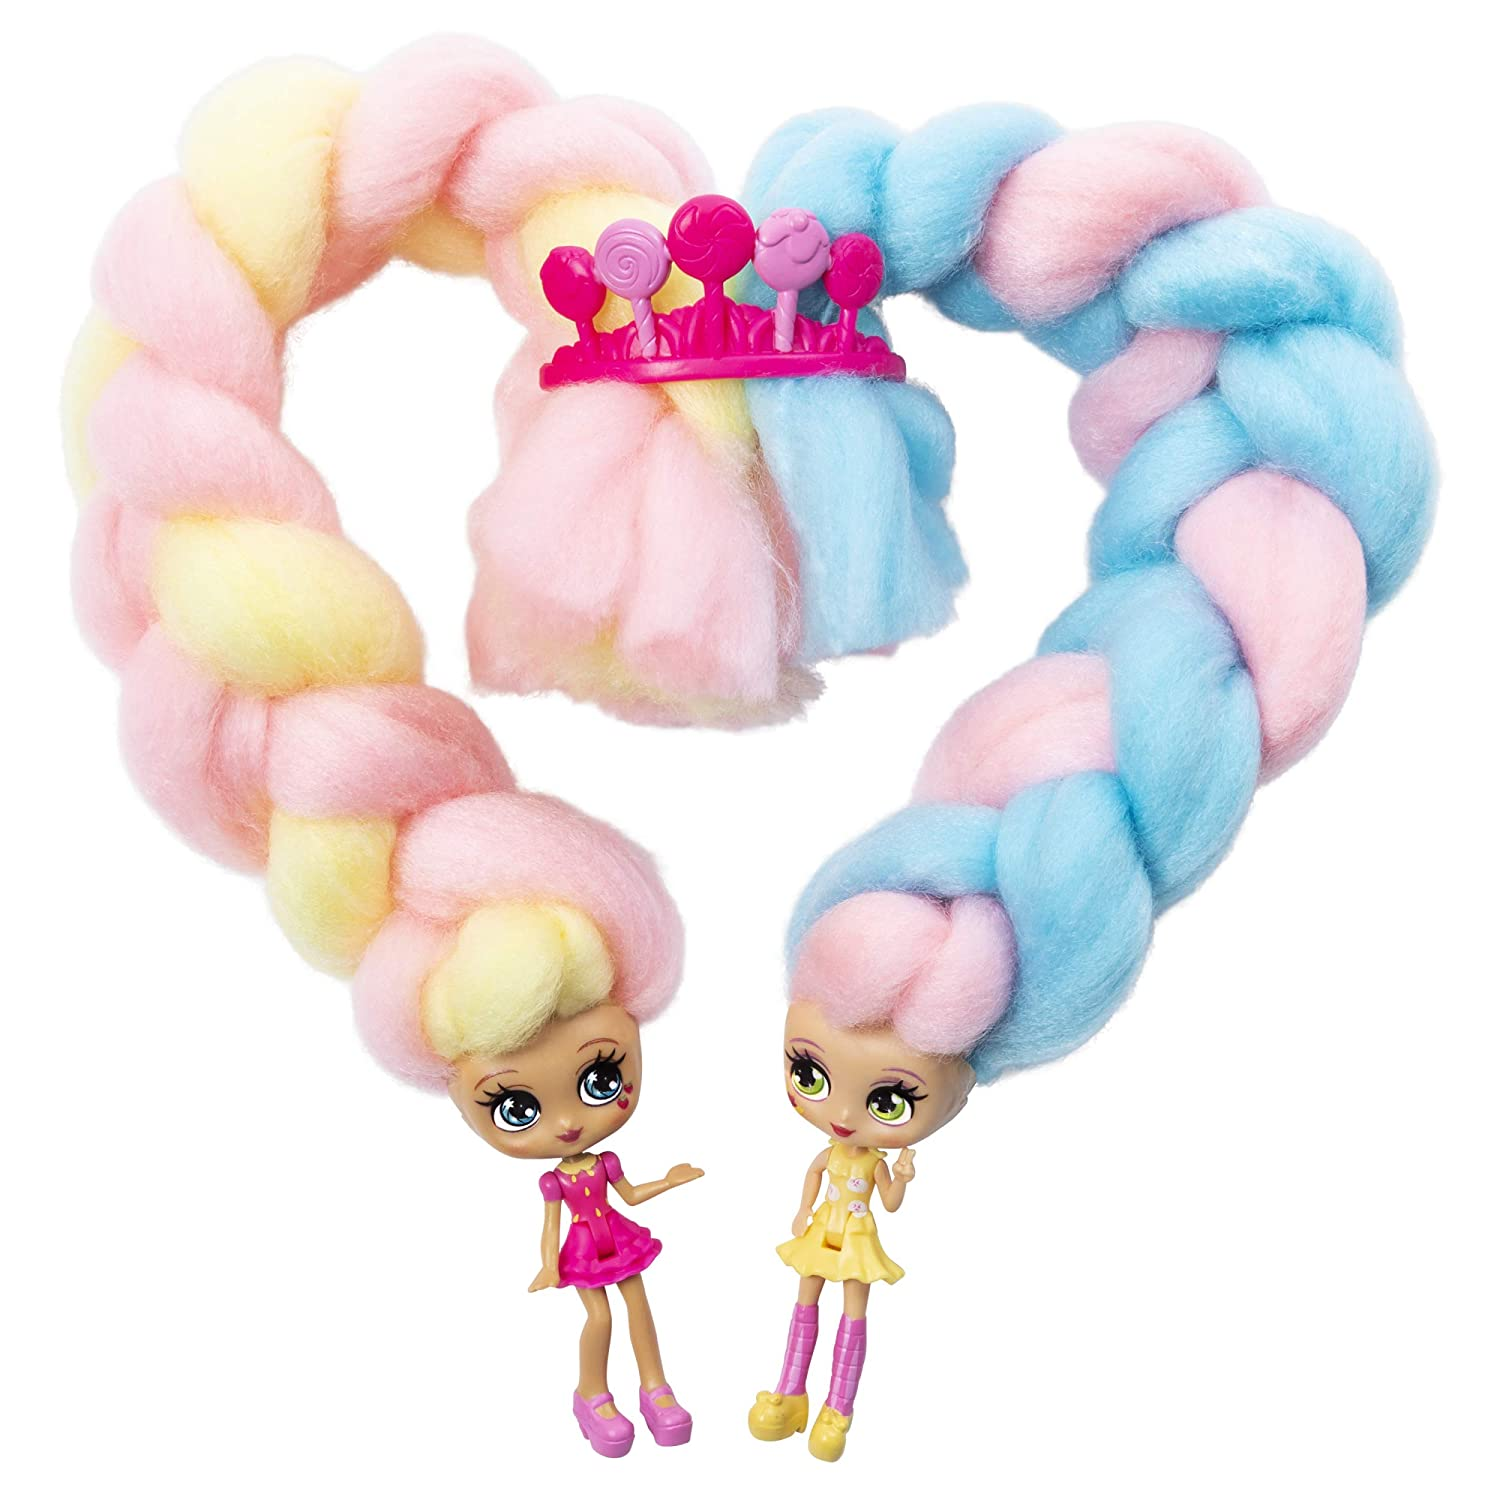 Styles May Vary - One Supplied Candylocks 6052312 BFF 2-Pack Doll Assortment